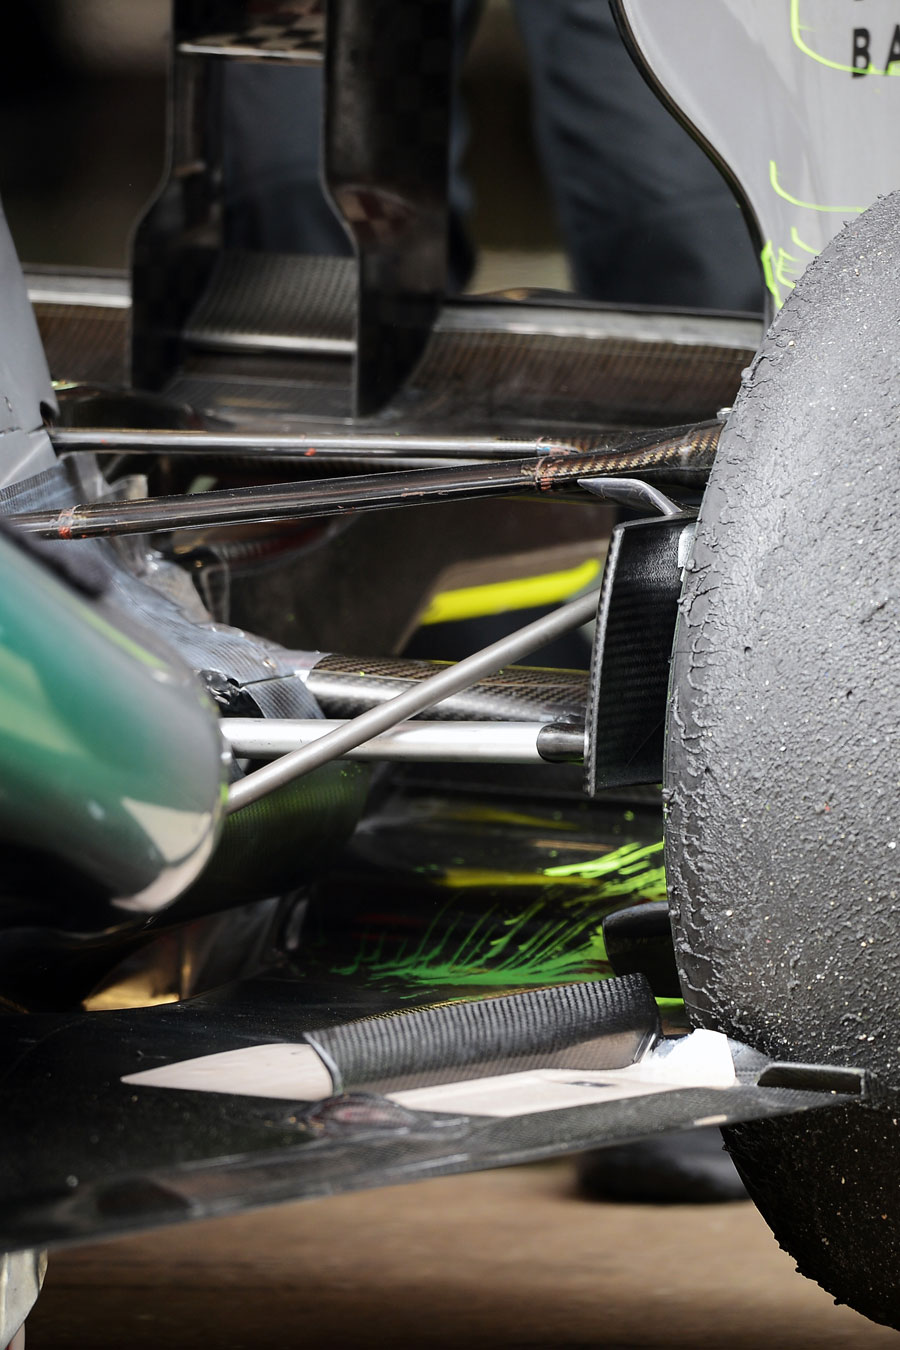 Exhaust detail and aero paint on the Mercedes W04